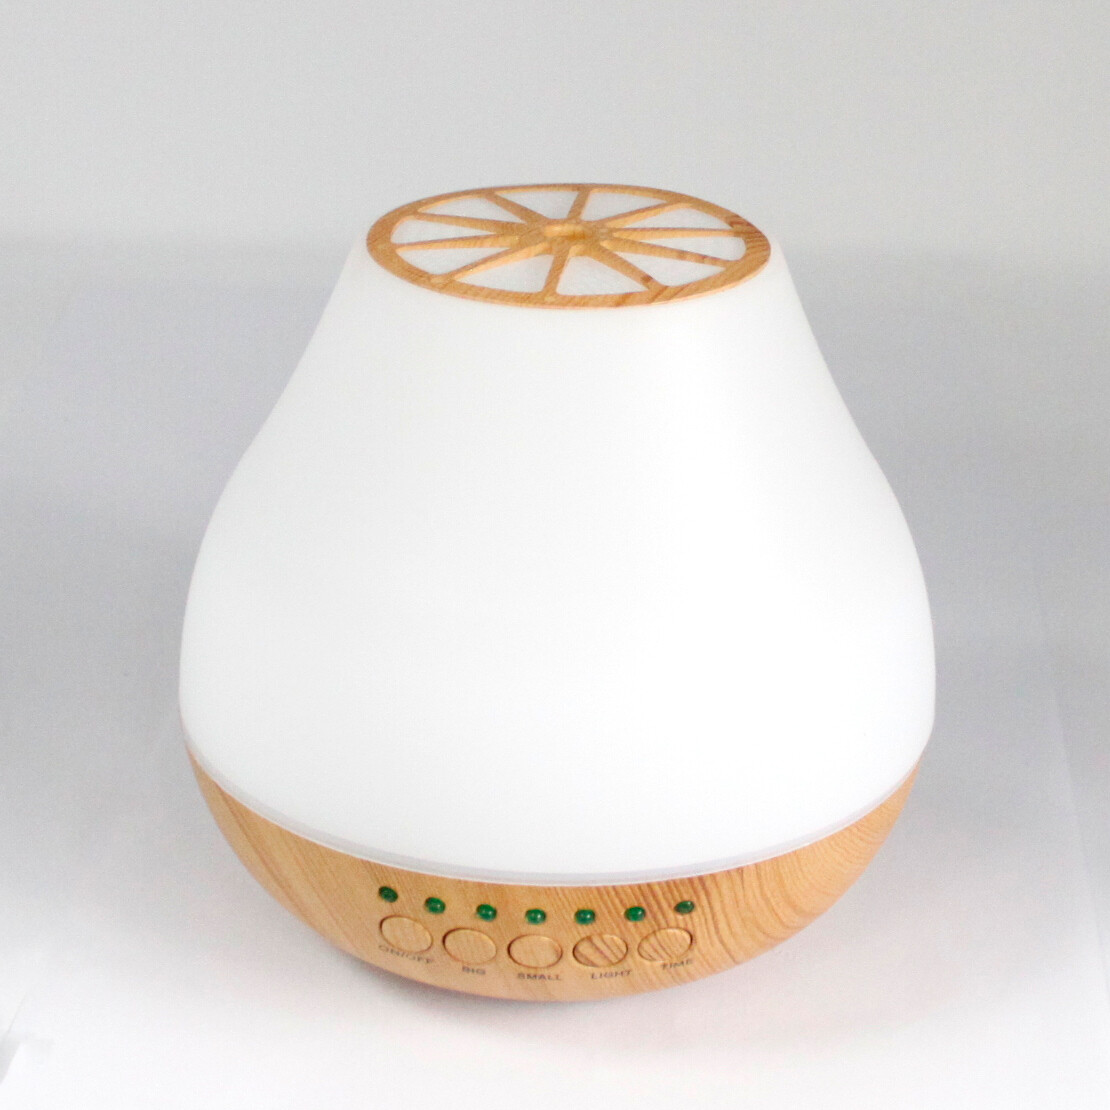 Viennese Aroma Diffuser